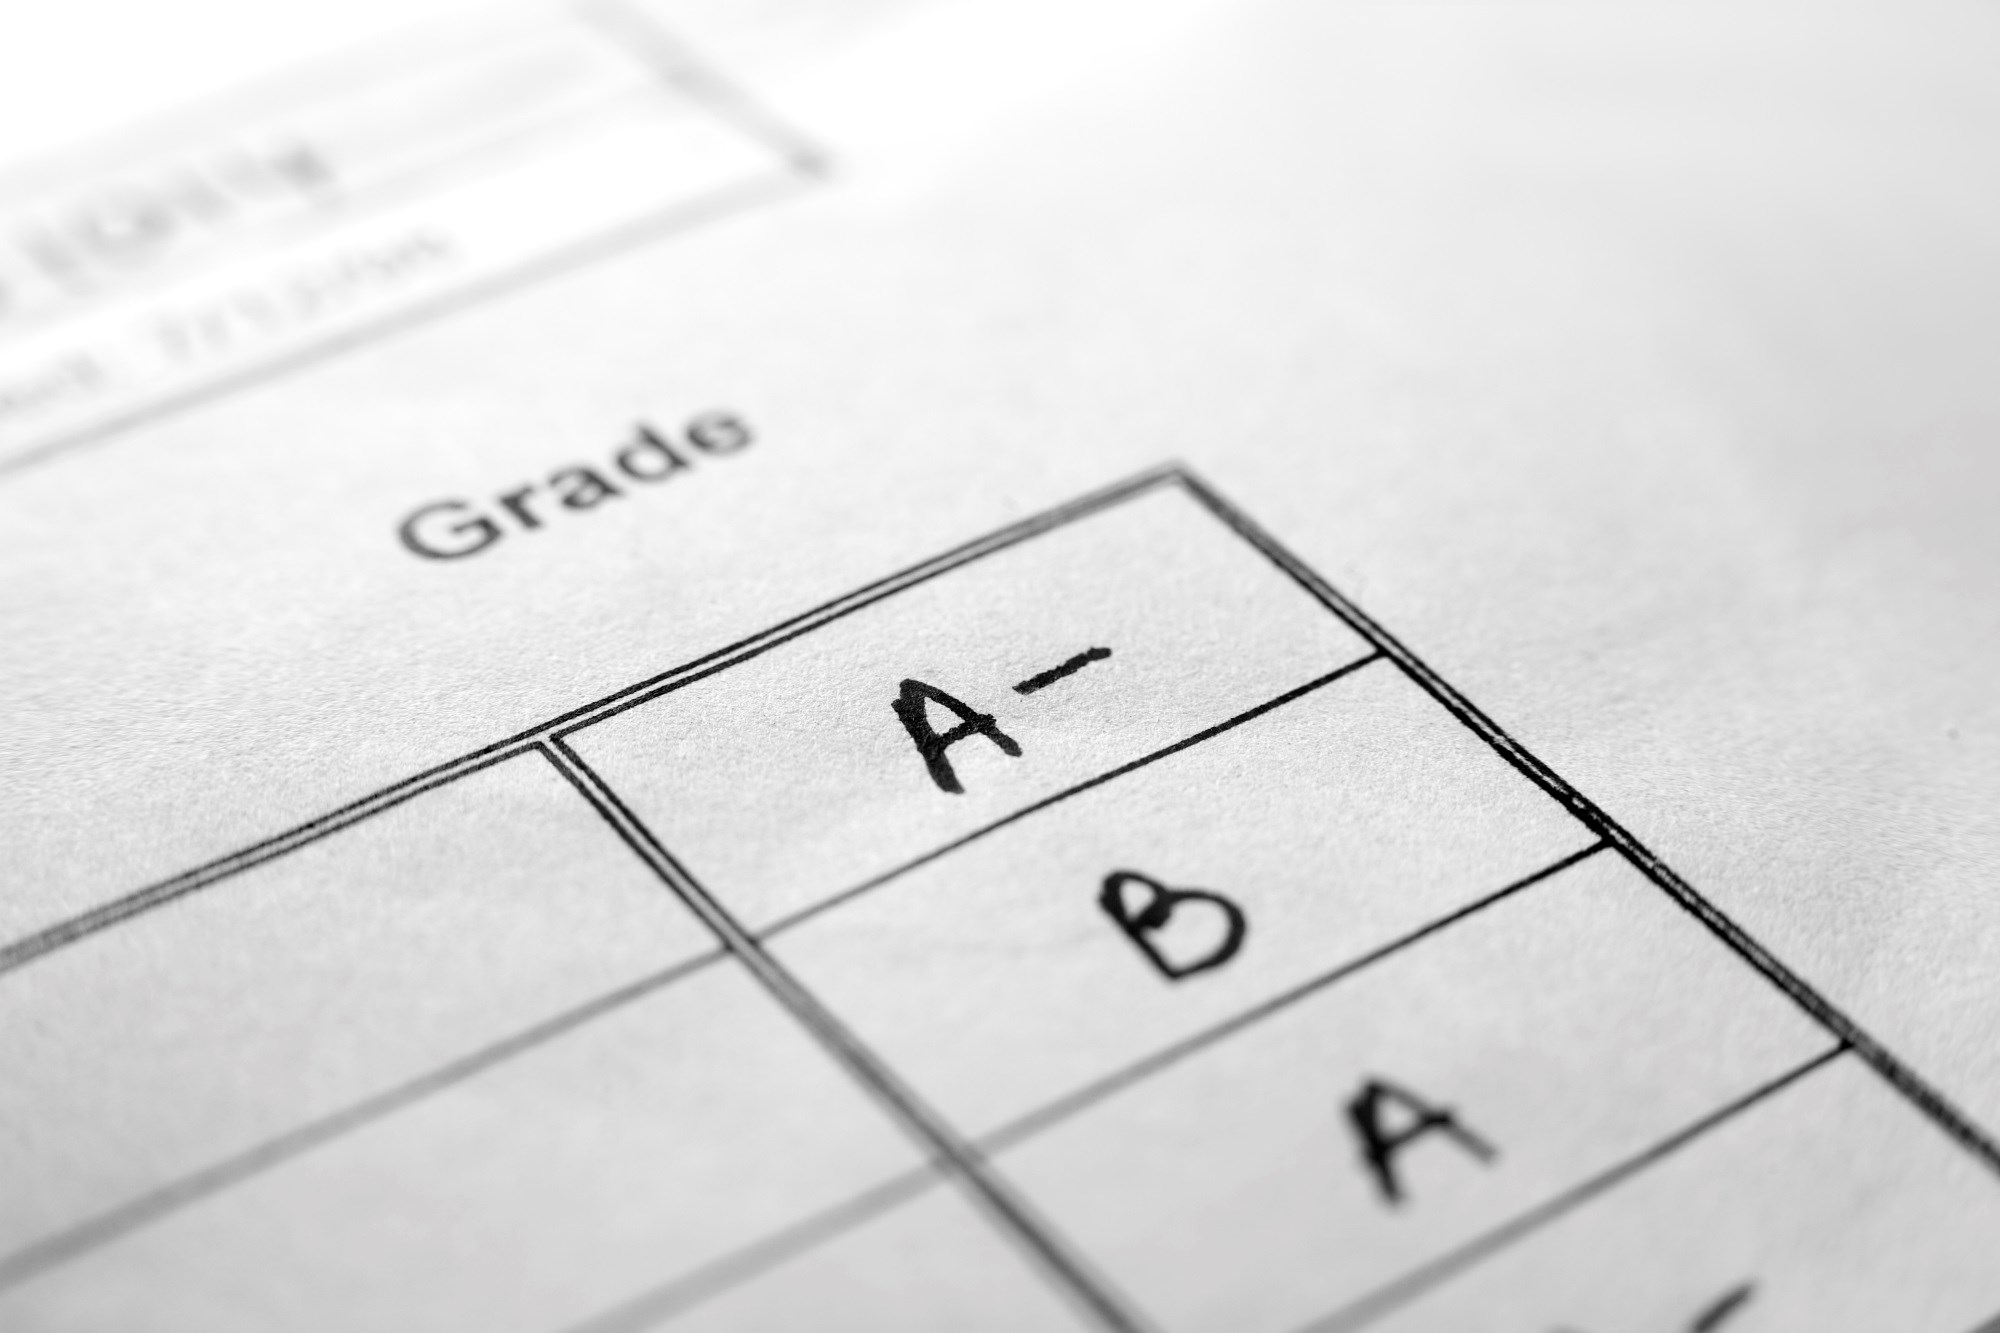 Do School Report Cards Serve as a Precipitant to Child Physical Abuse?